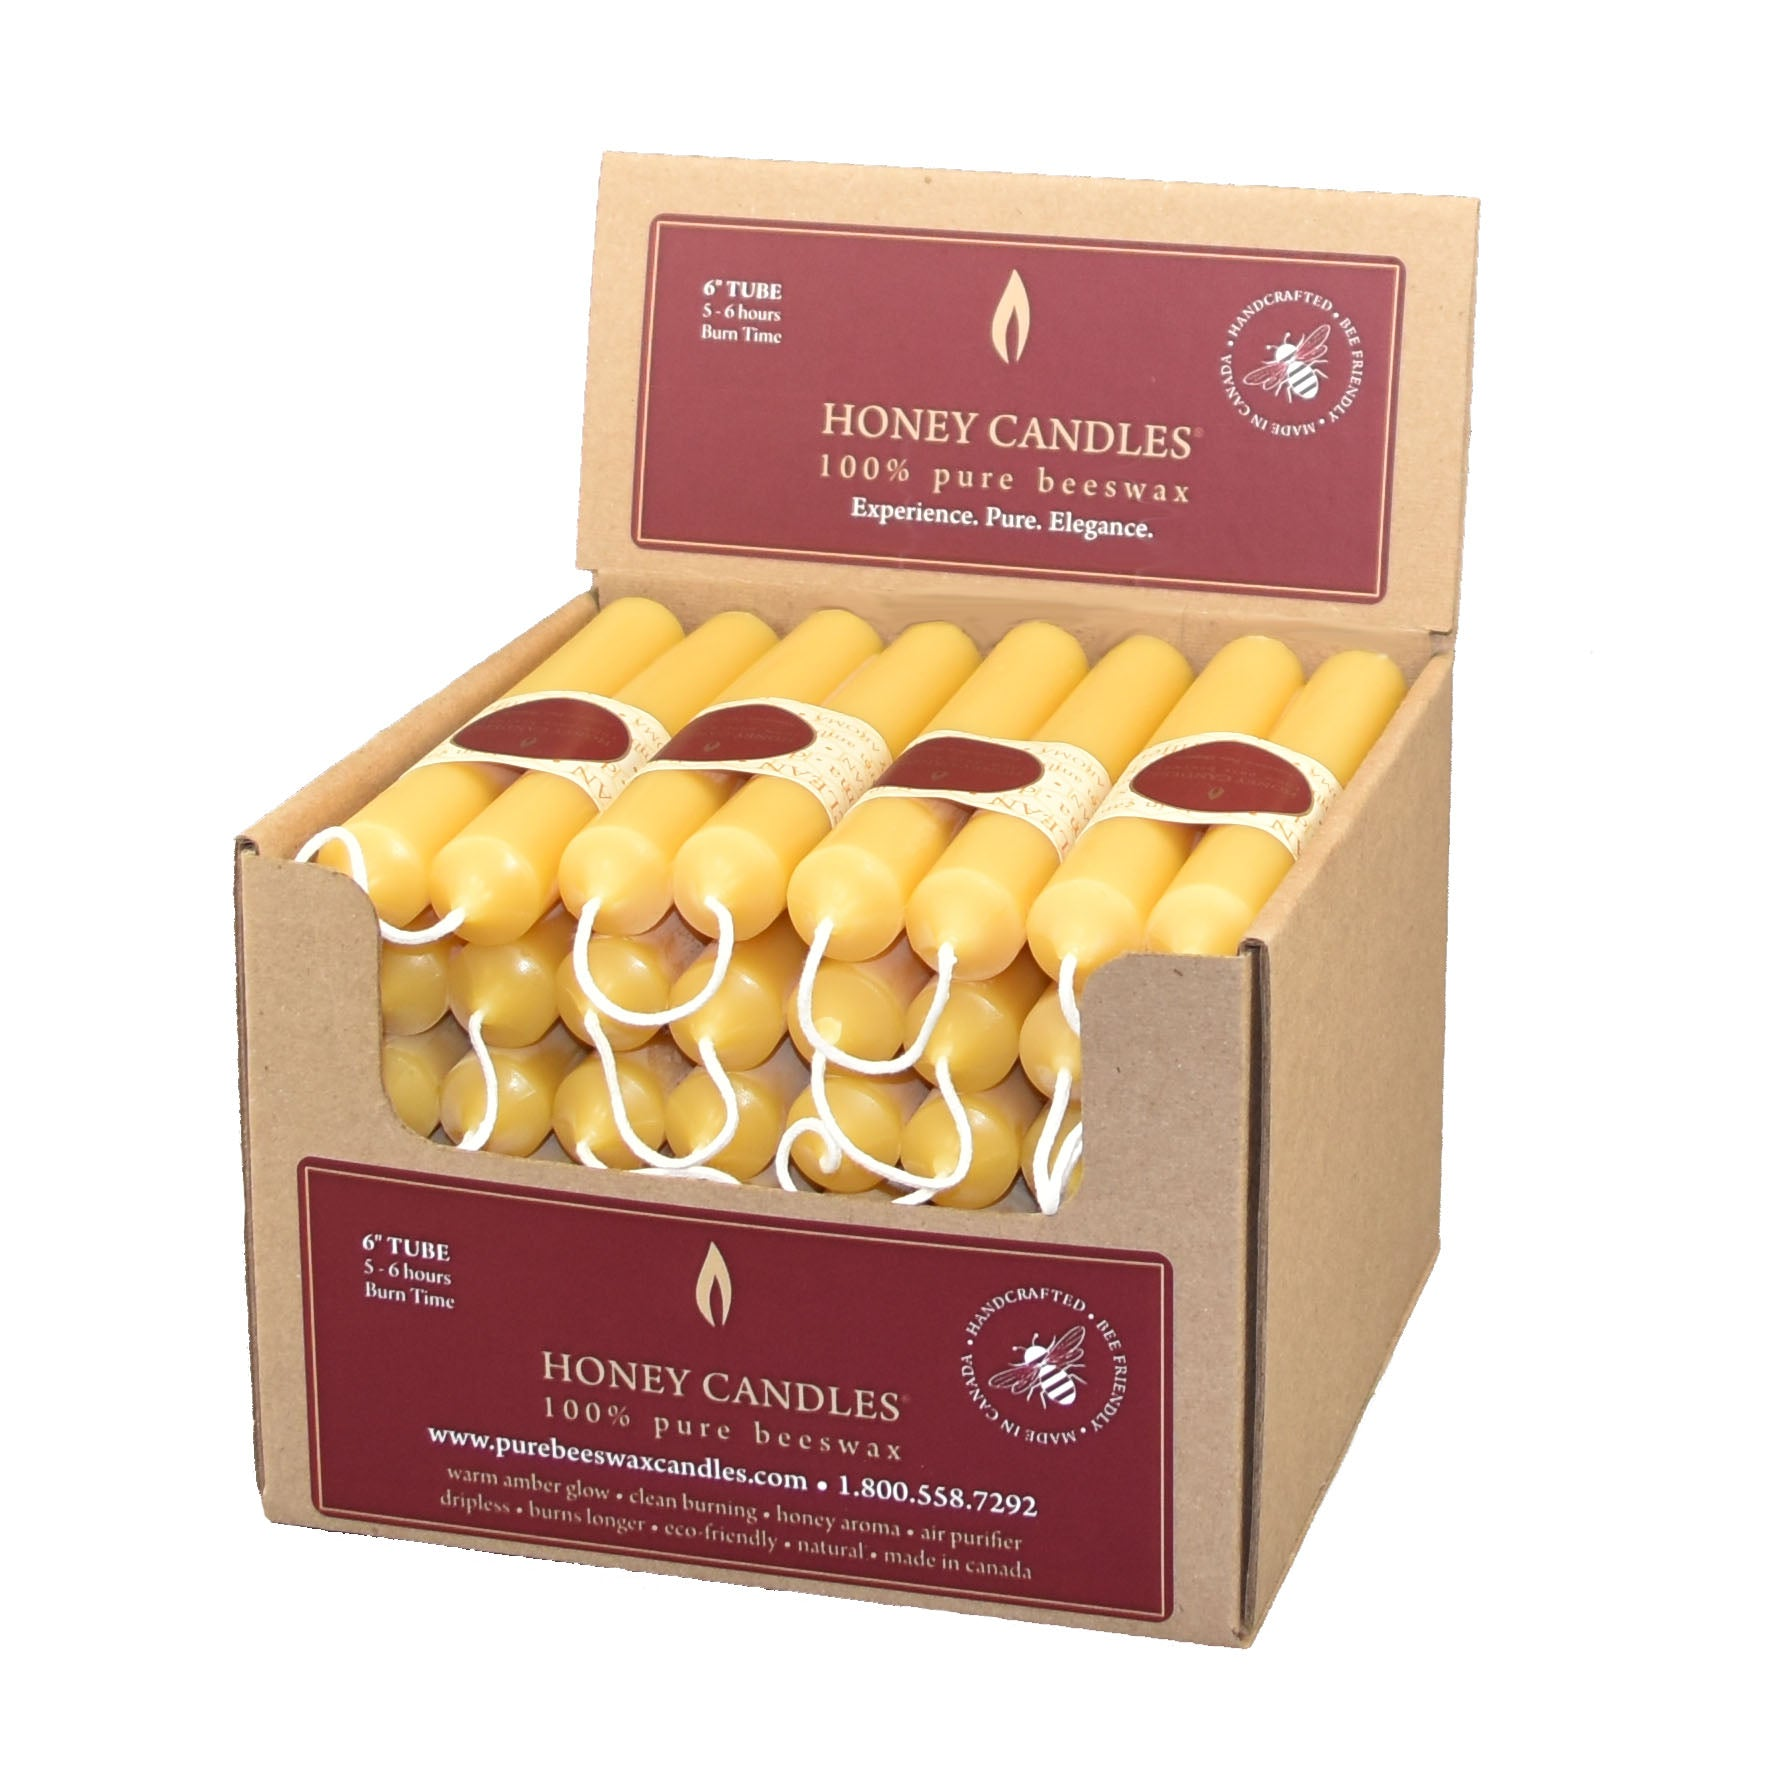 Case of twenty four, beeswax tube candle pairs, in a recyclable cardboard box.